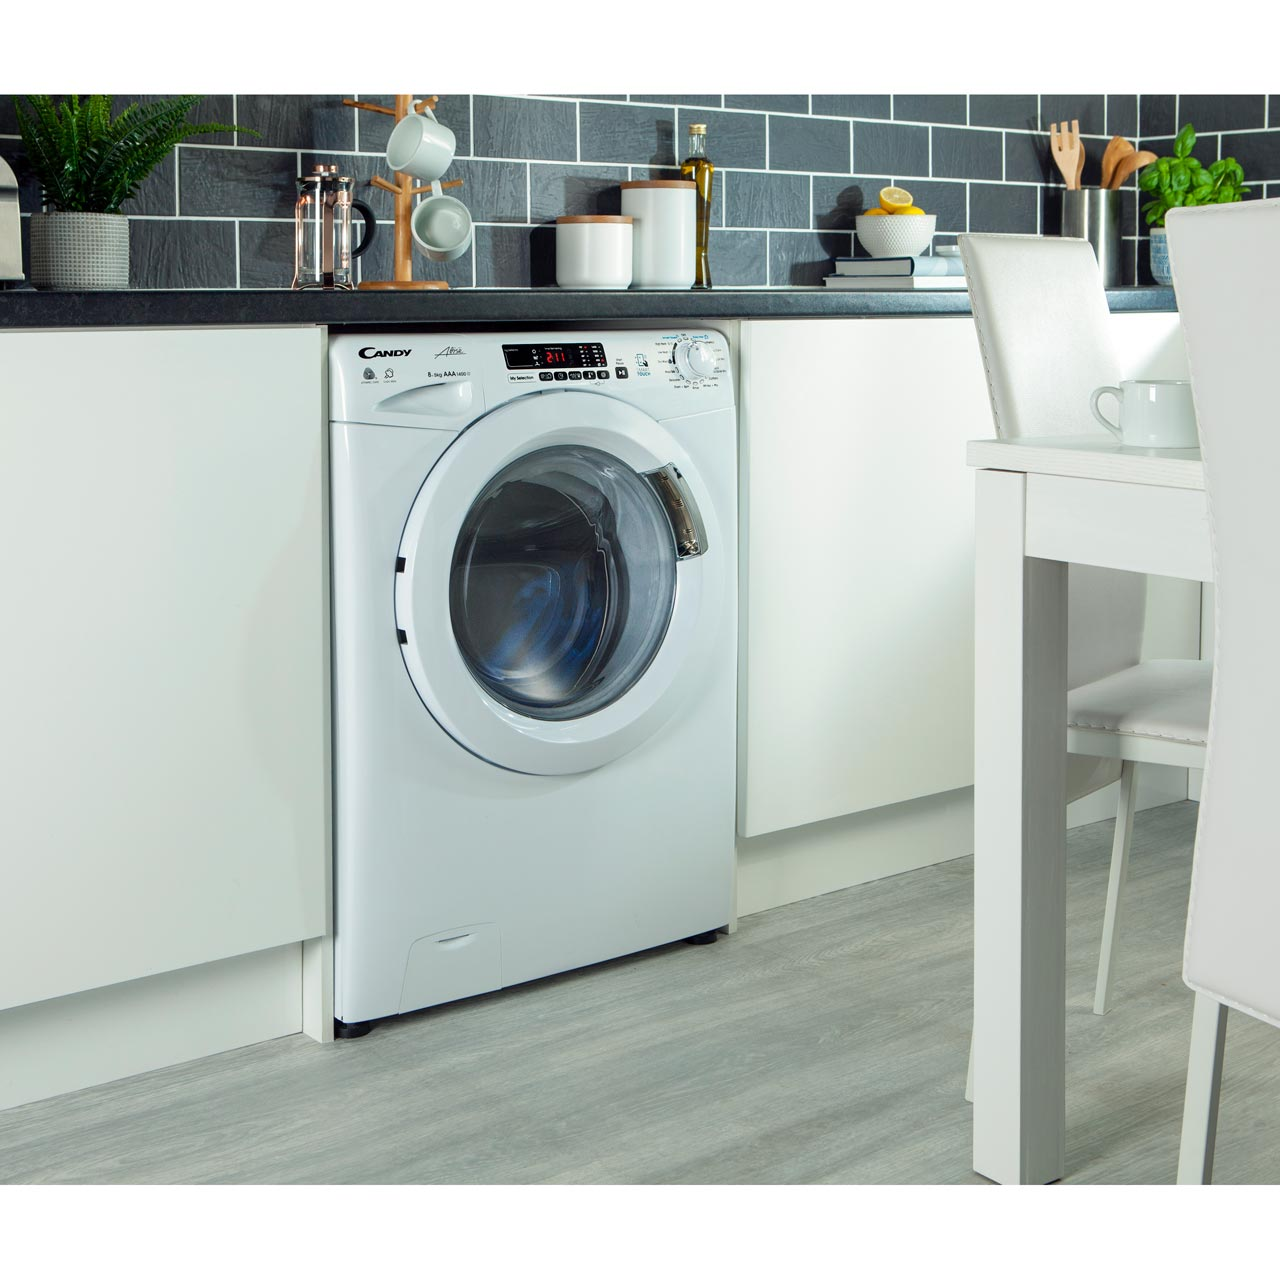 GVSW496D_WH | Candy washer dryer | white | ao.com